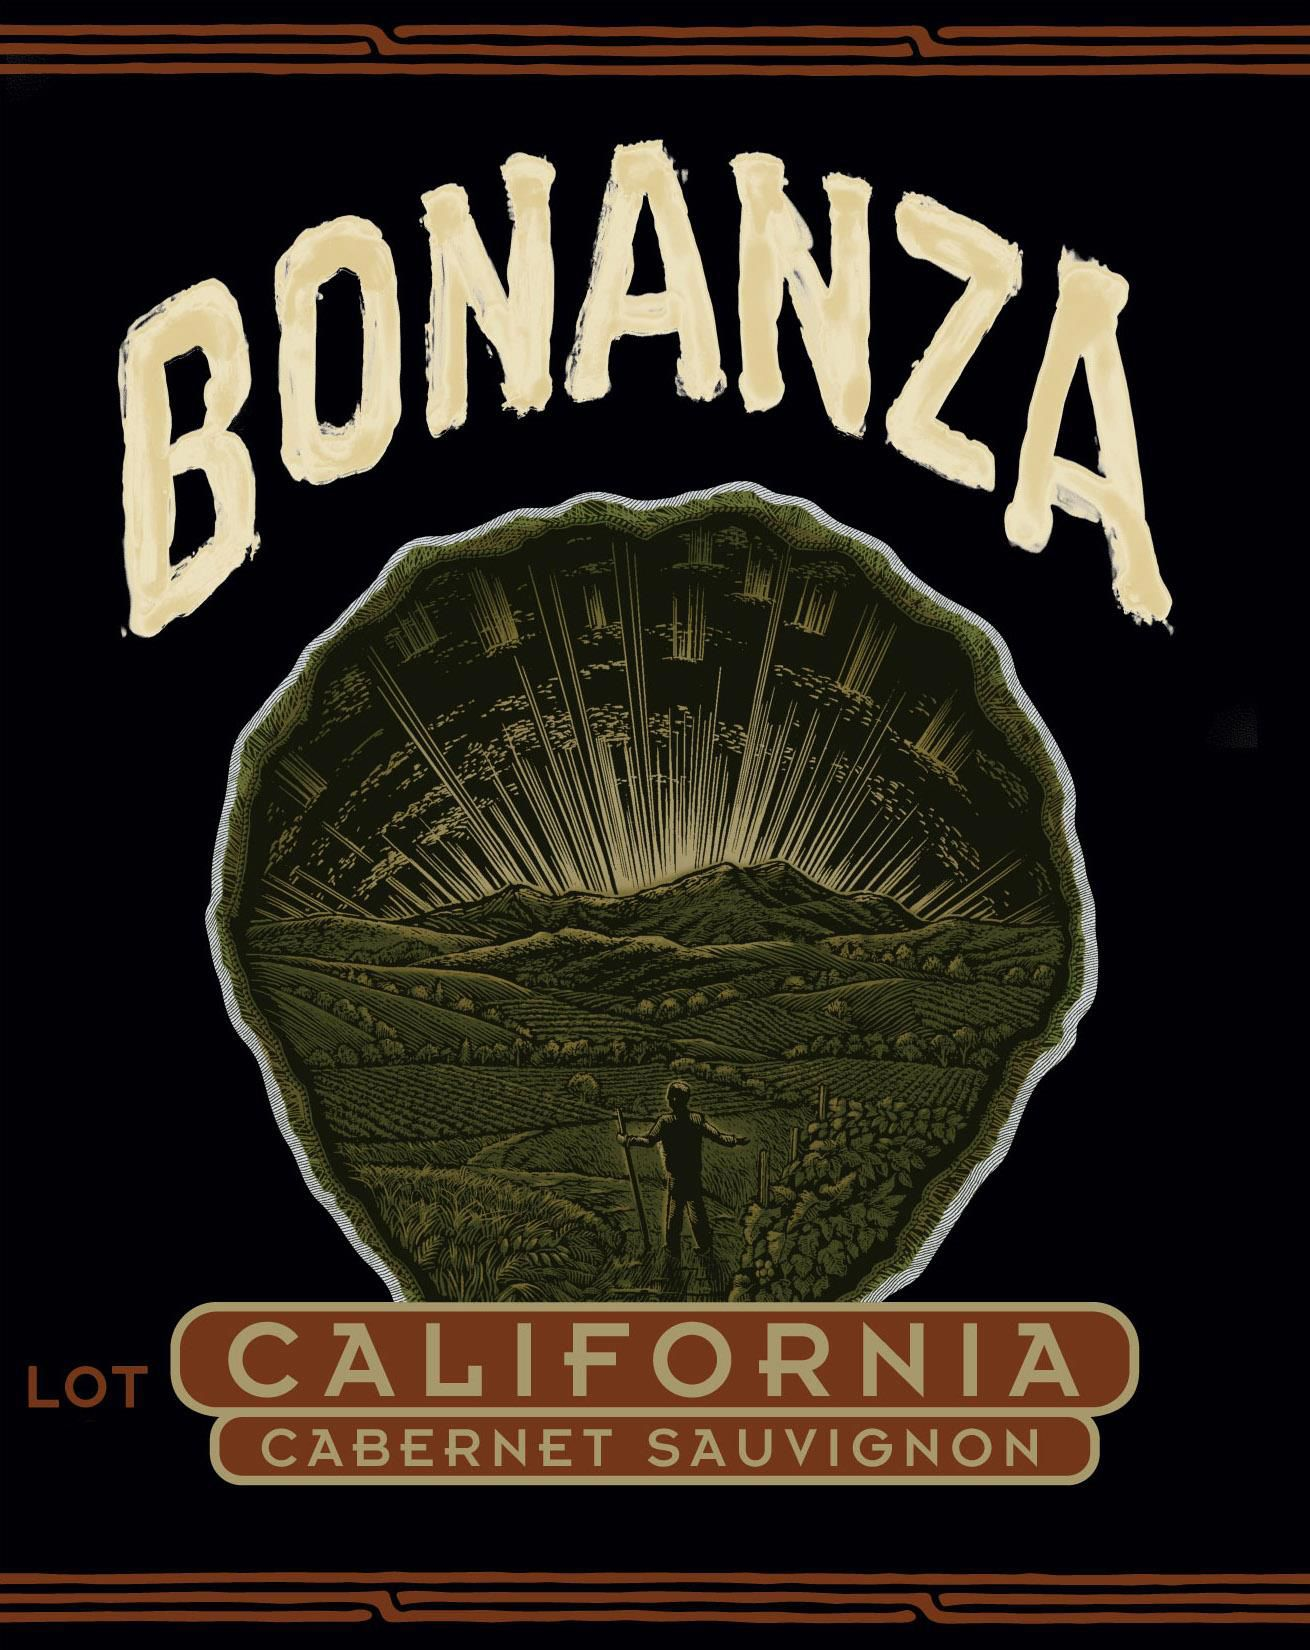 Bonanza by Chuck Wagner California Cabernet Sauvignon Lot 2  Front Label